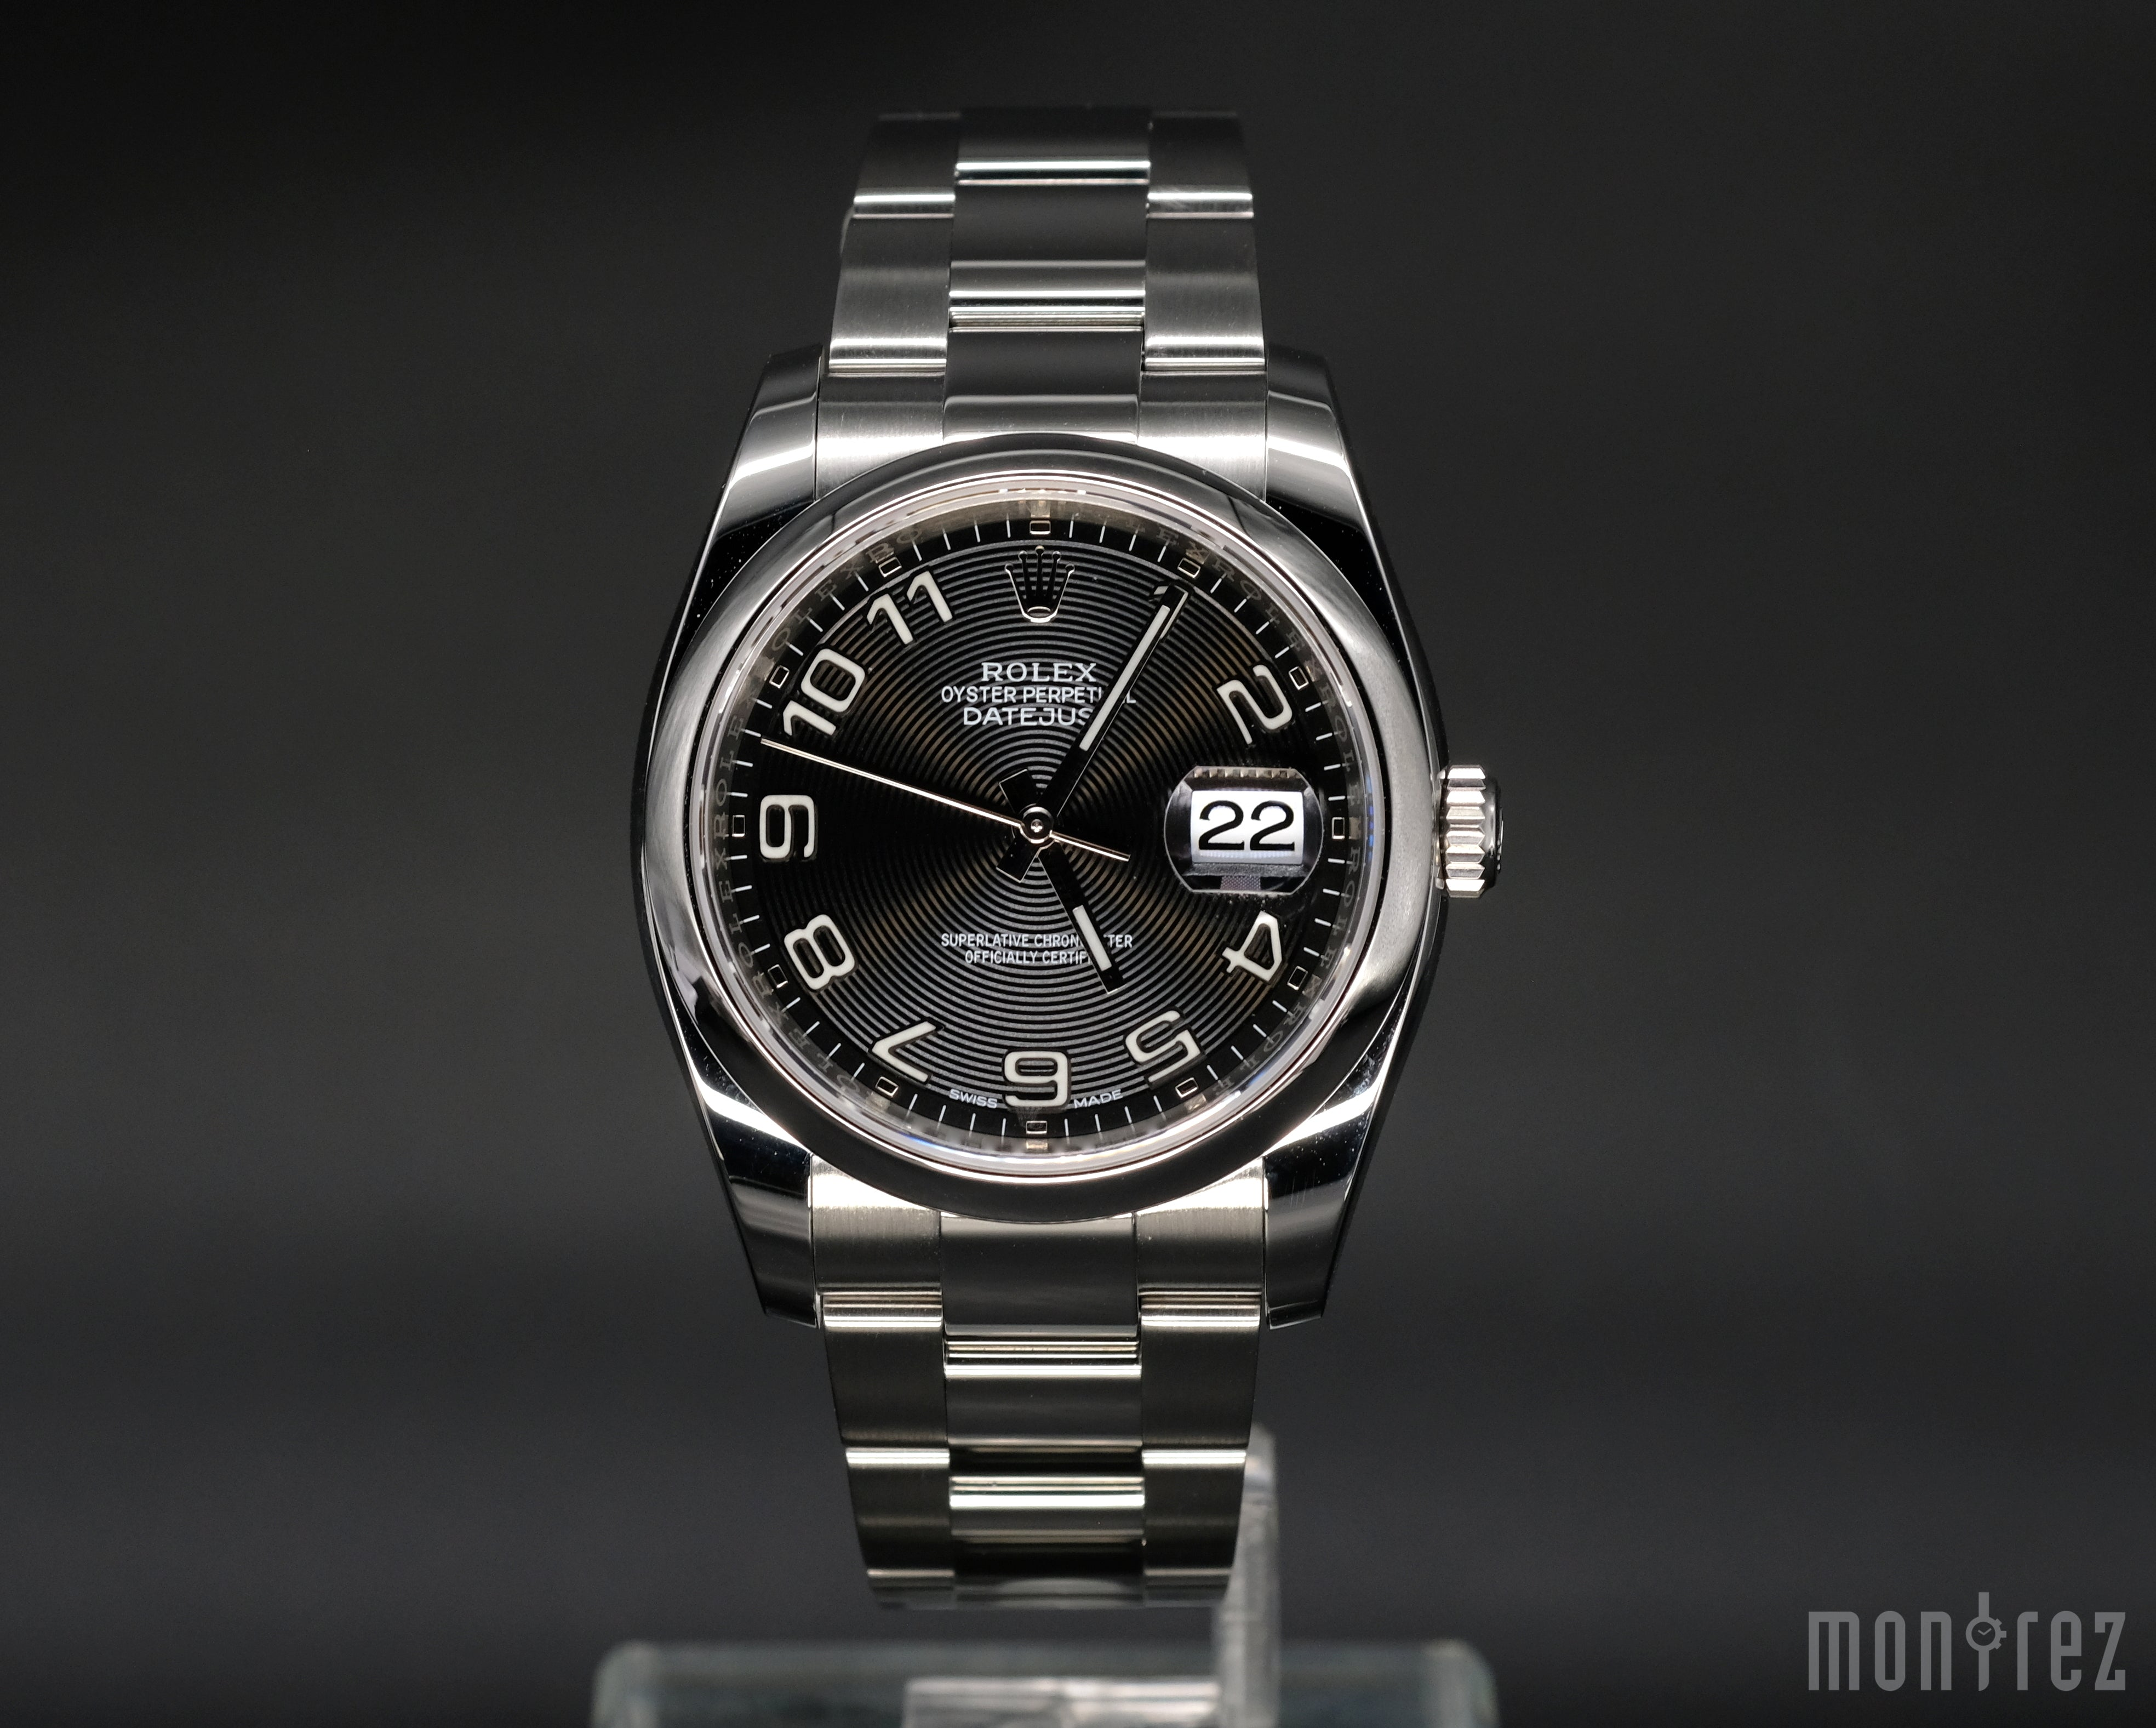 [Pre-Owned Watch] Rolex Datejust 36mm 116200 Black Arabic Numeral Dial (Oyster Bracelet) (888)